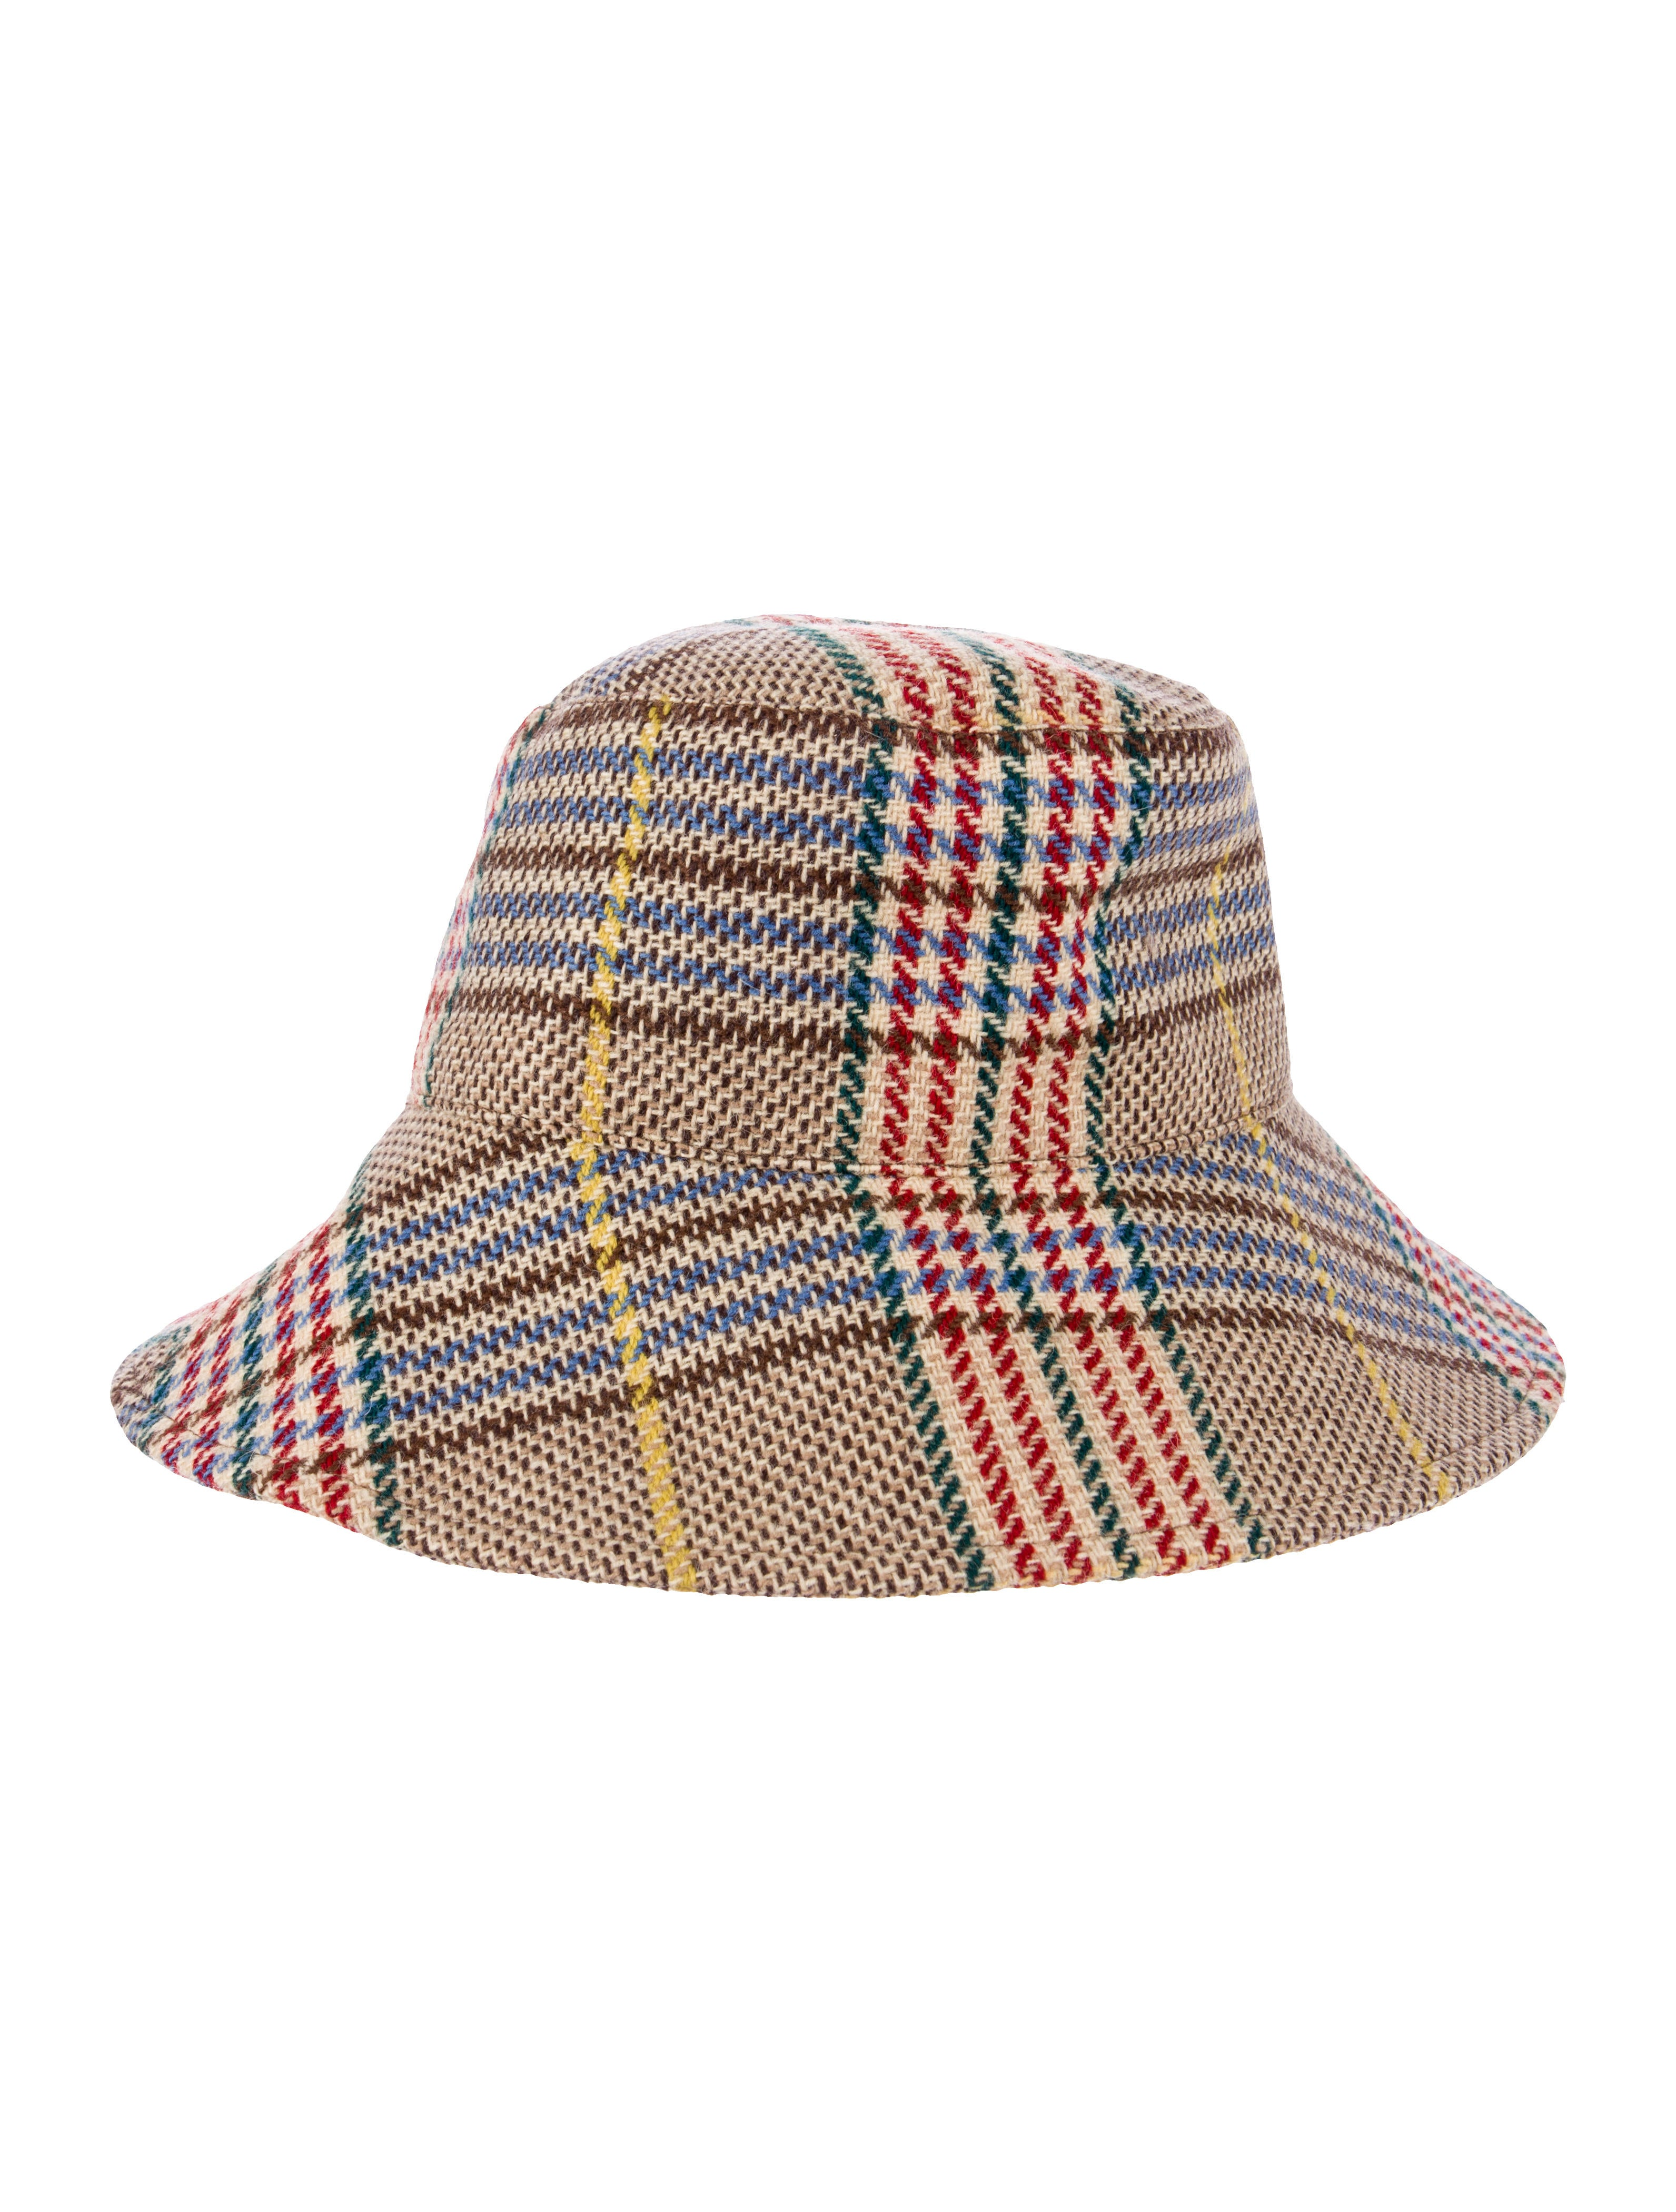 burberry hat accessories bur34385 the realreal